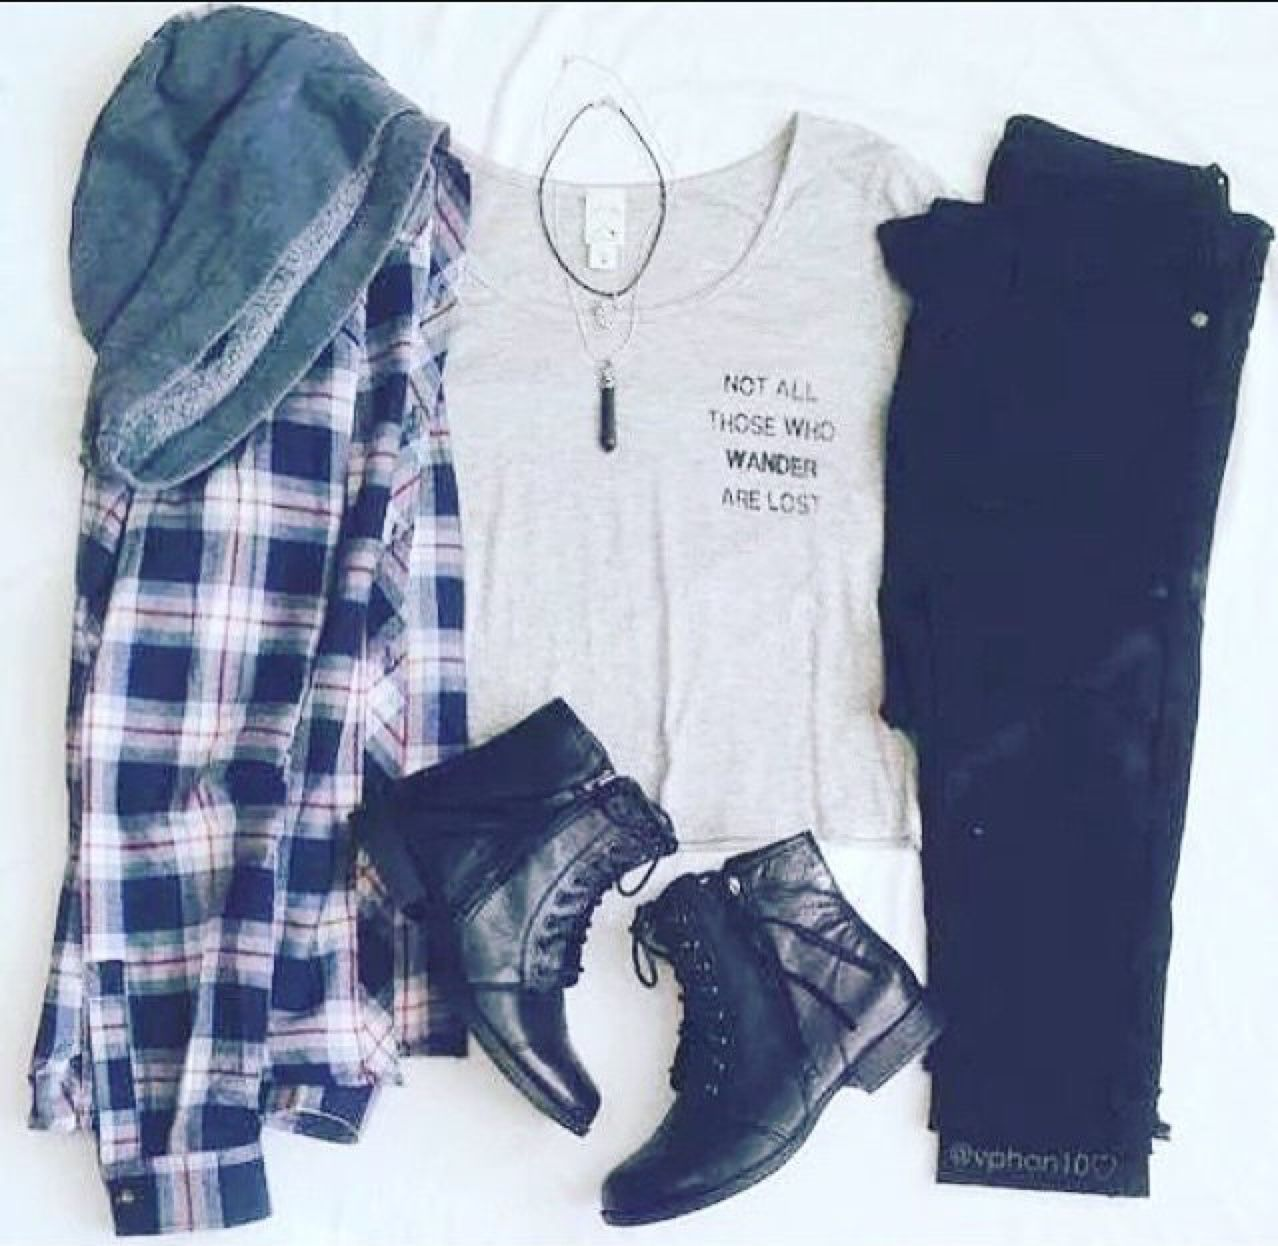 Flannel jeans and boots   Awesome Grunge Outfits Ideas for Women  Grunge outfits Grunge